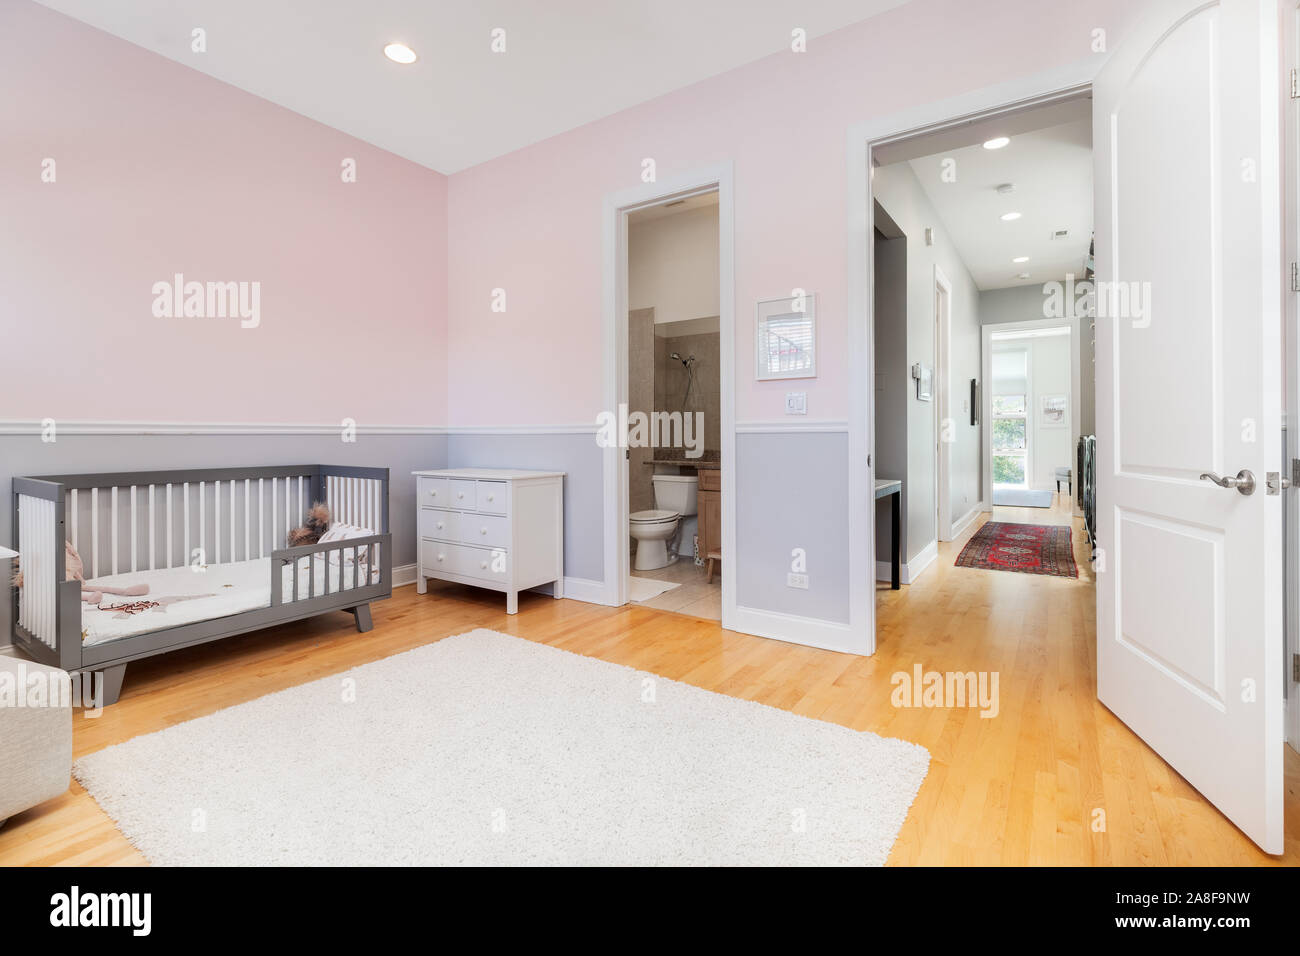 A Children S Bedroom With White And Purple Walls Looking Down The Hallway A Crib Sits Up Against The Wall And A Rug Over The Light Hardwood Floors Stock Photo Alamy